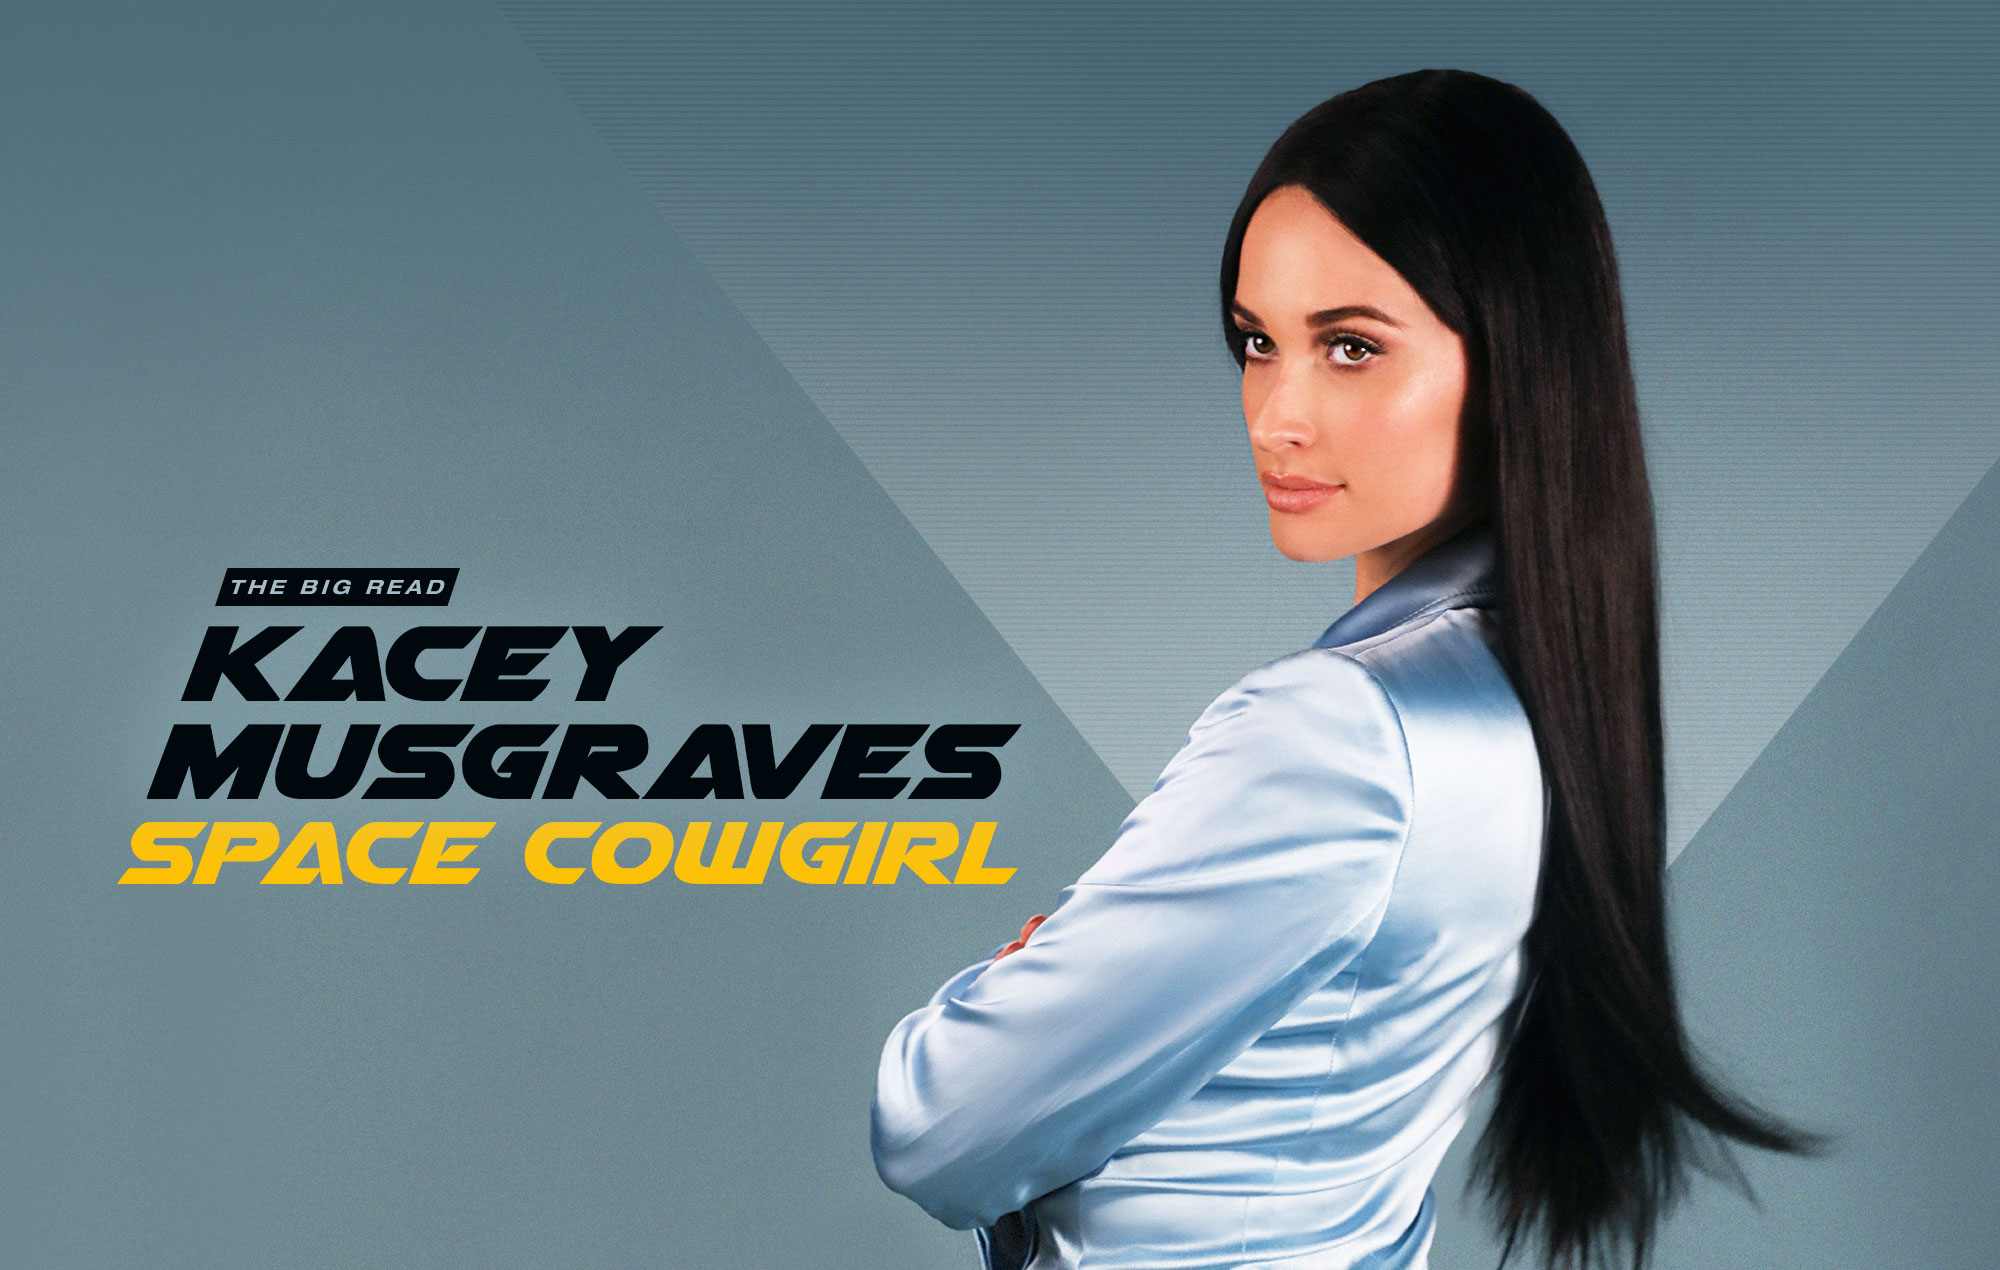 Kacey Musgraves NME Interview